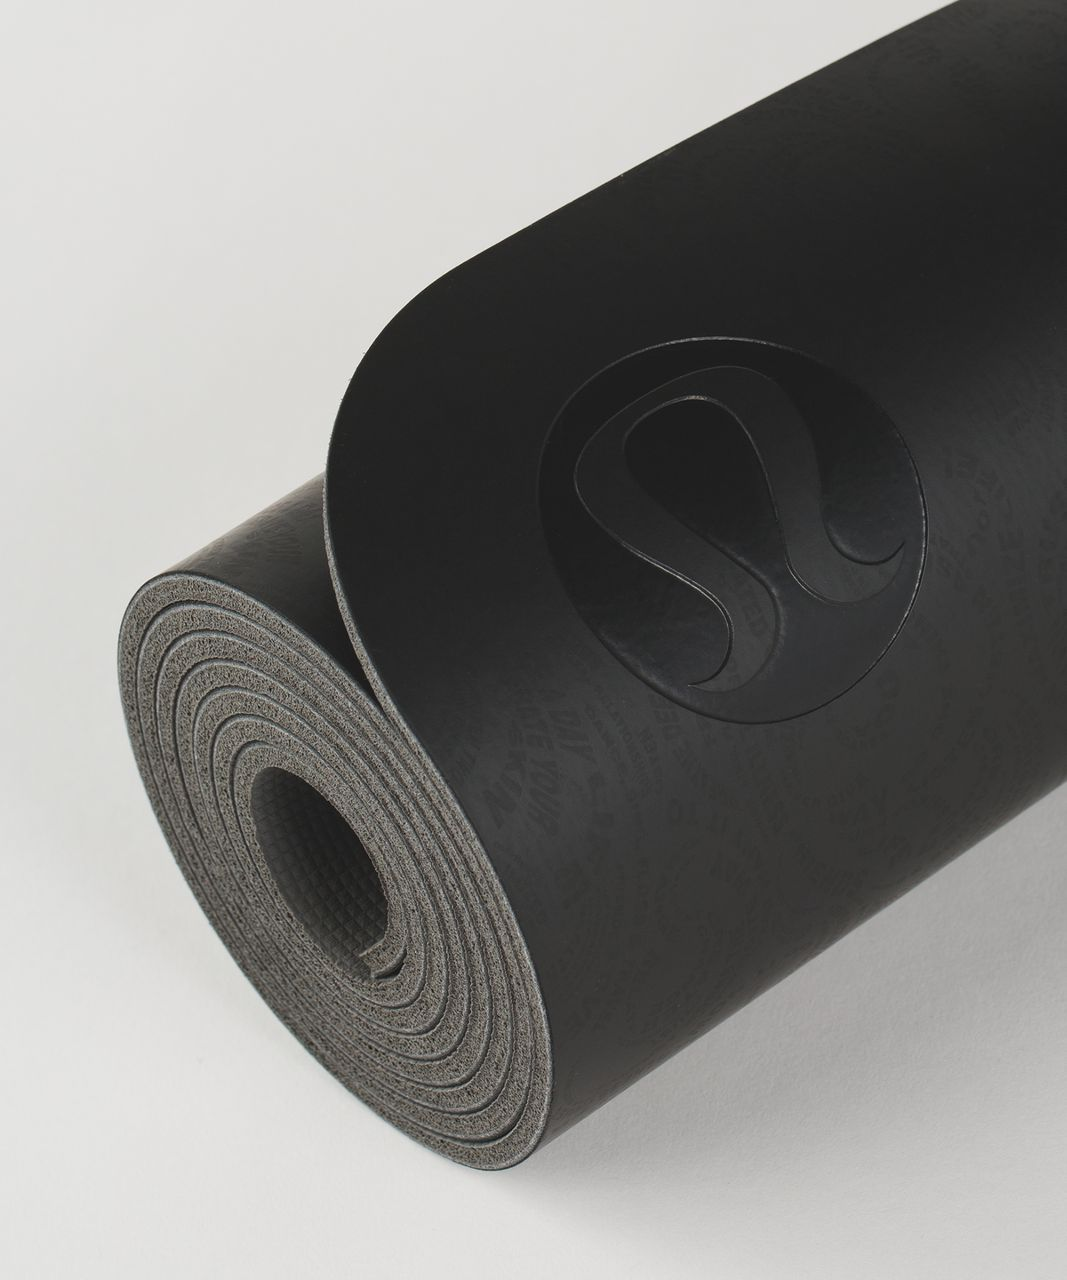 a43efb6d33 Lululemon The Reversible Mat 5mm - Maxi Foli Manifesto Black Deep Coal /  Soot Light - lulu fanatics